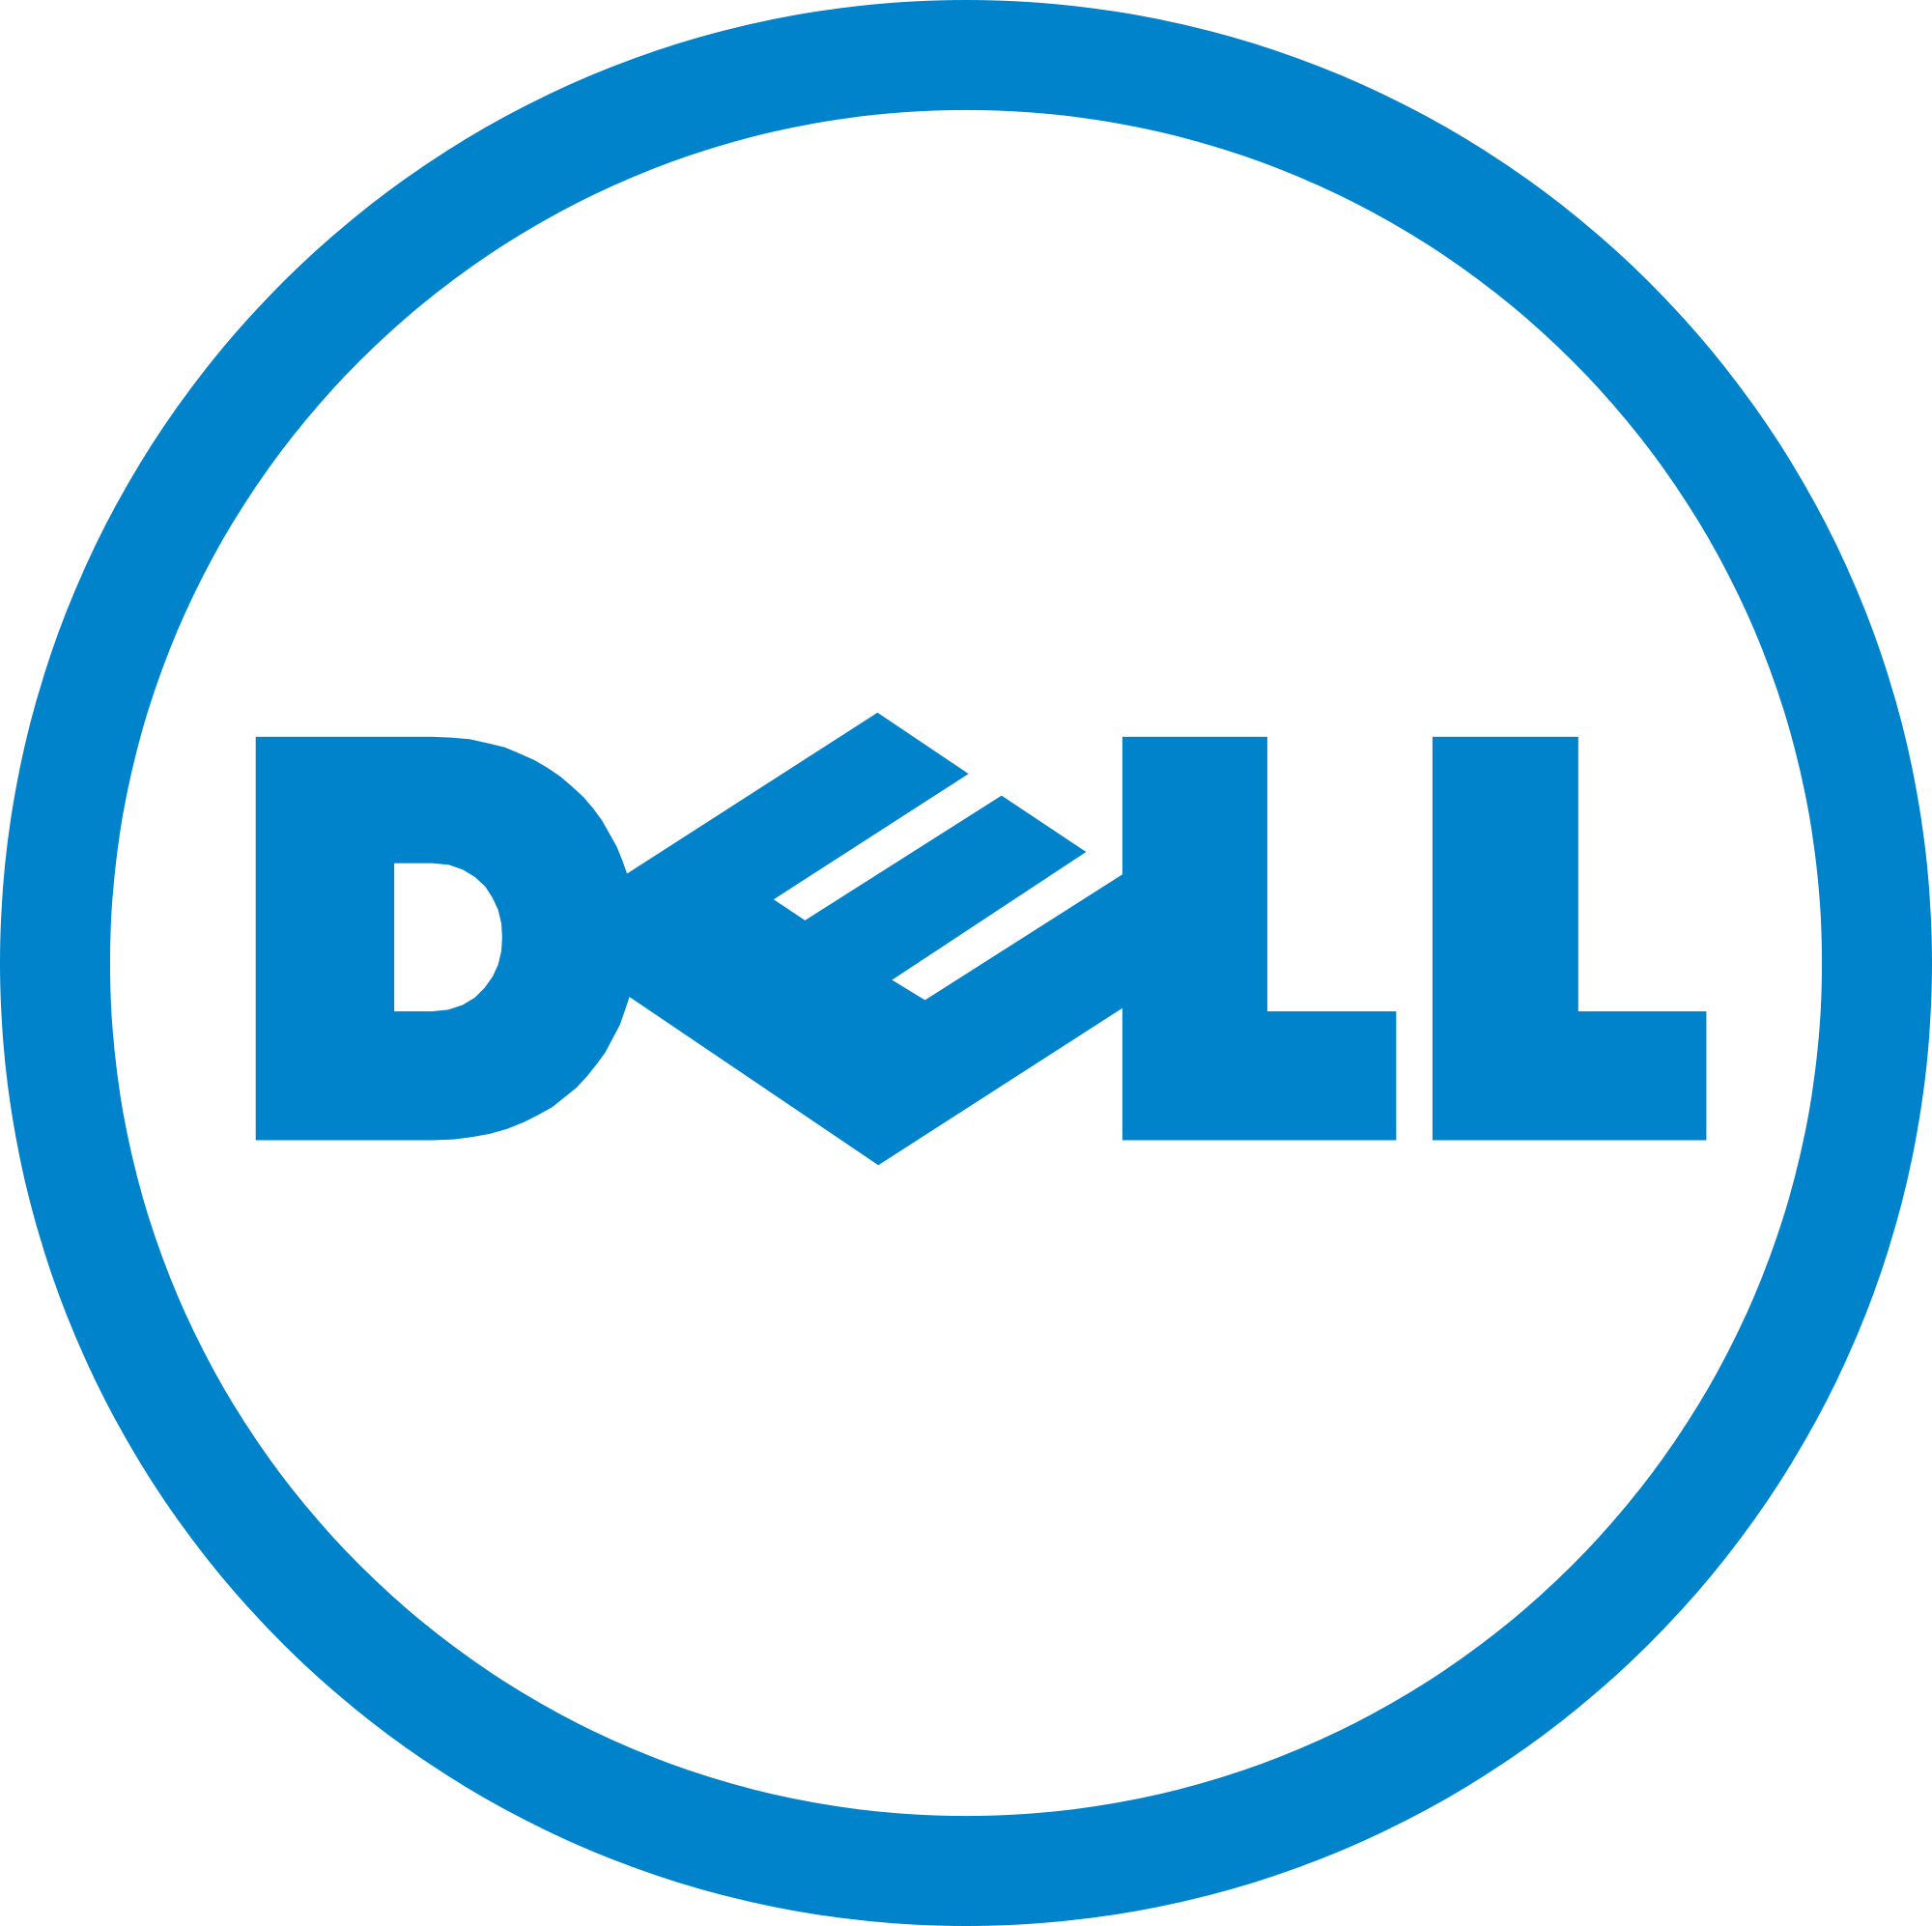 Dell_Logo-2016.png